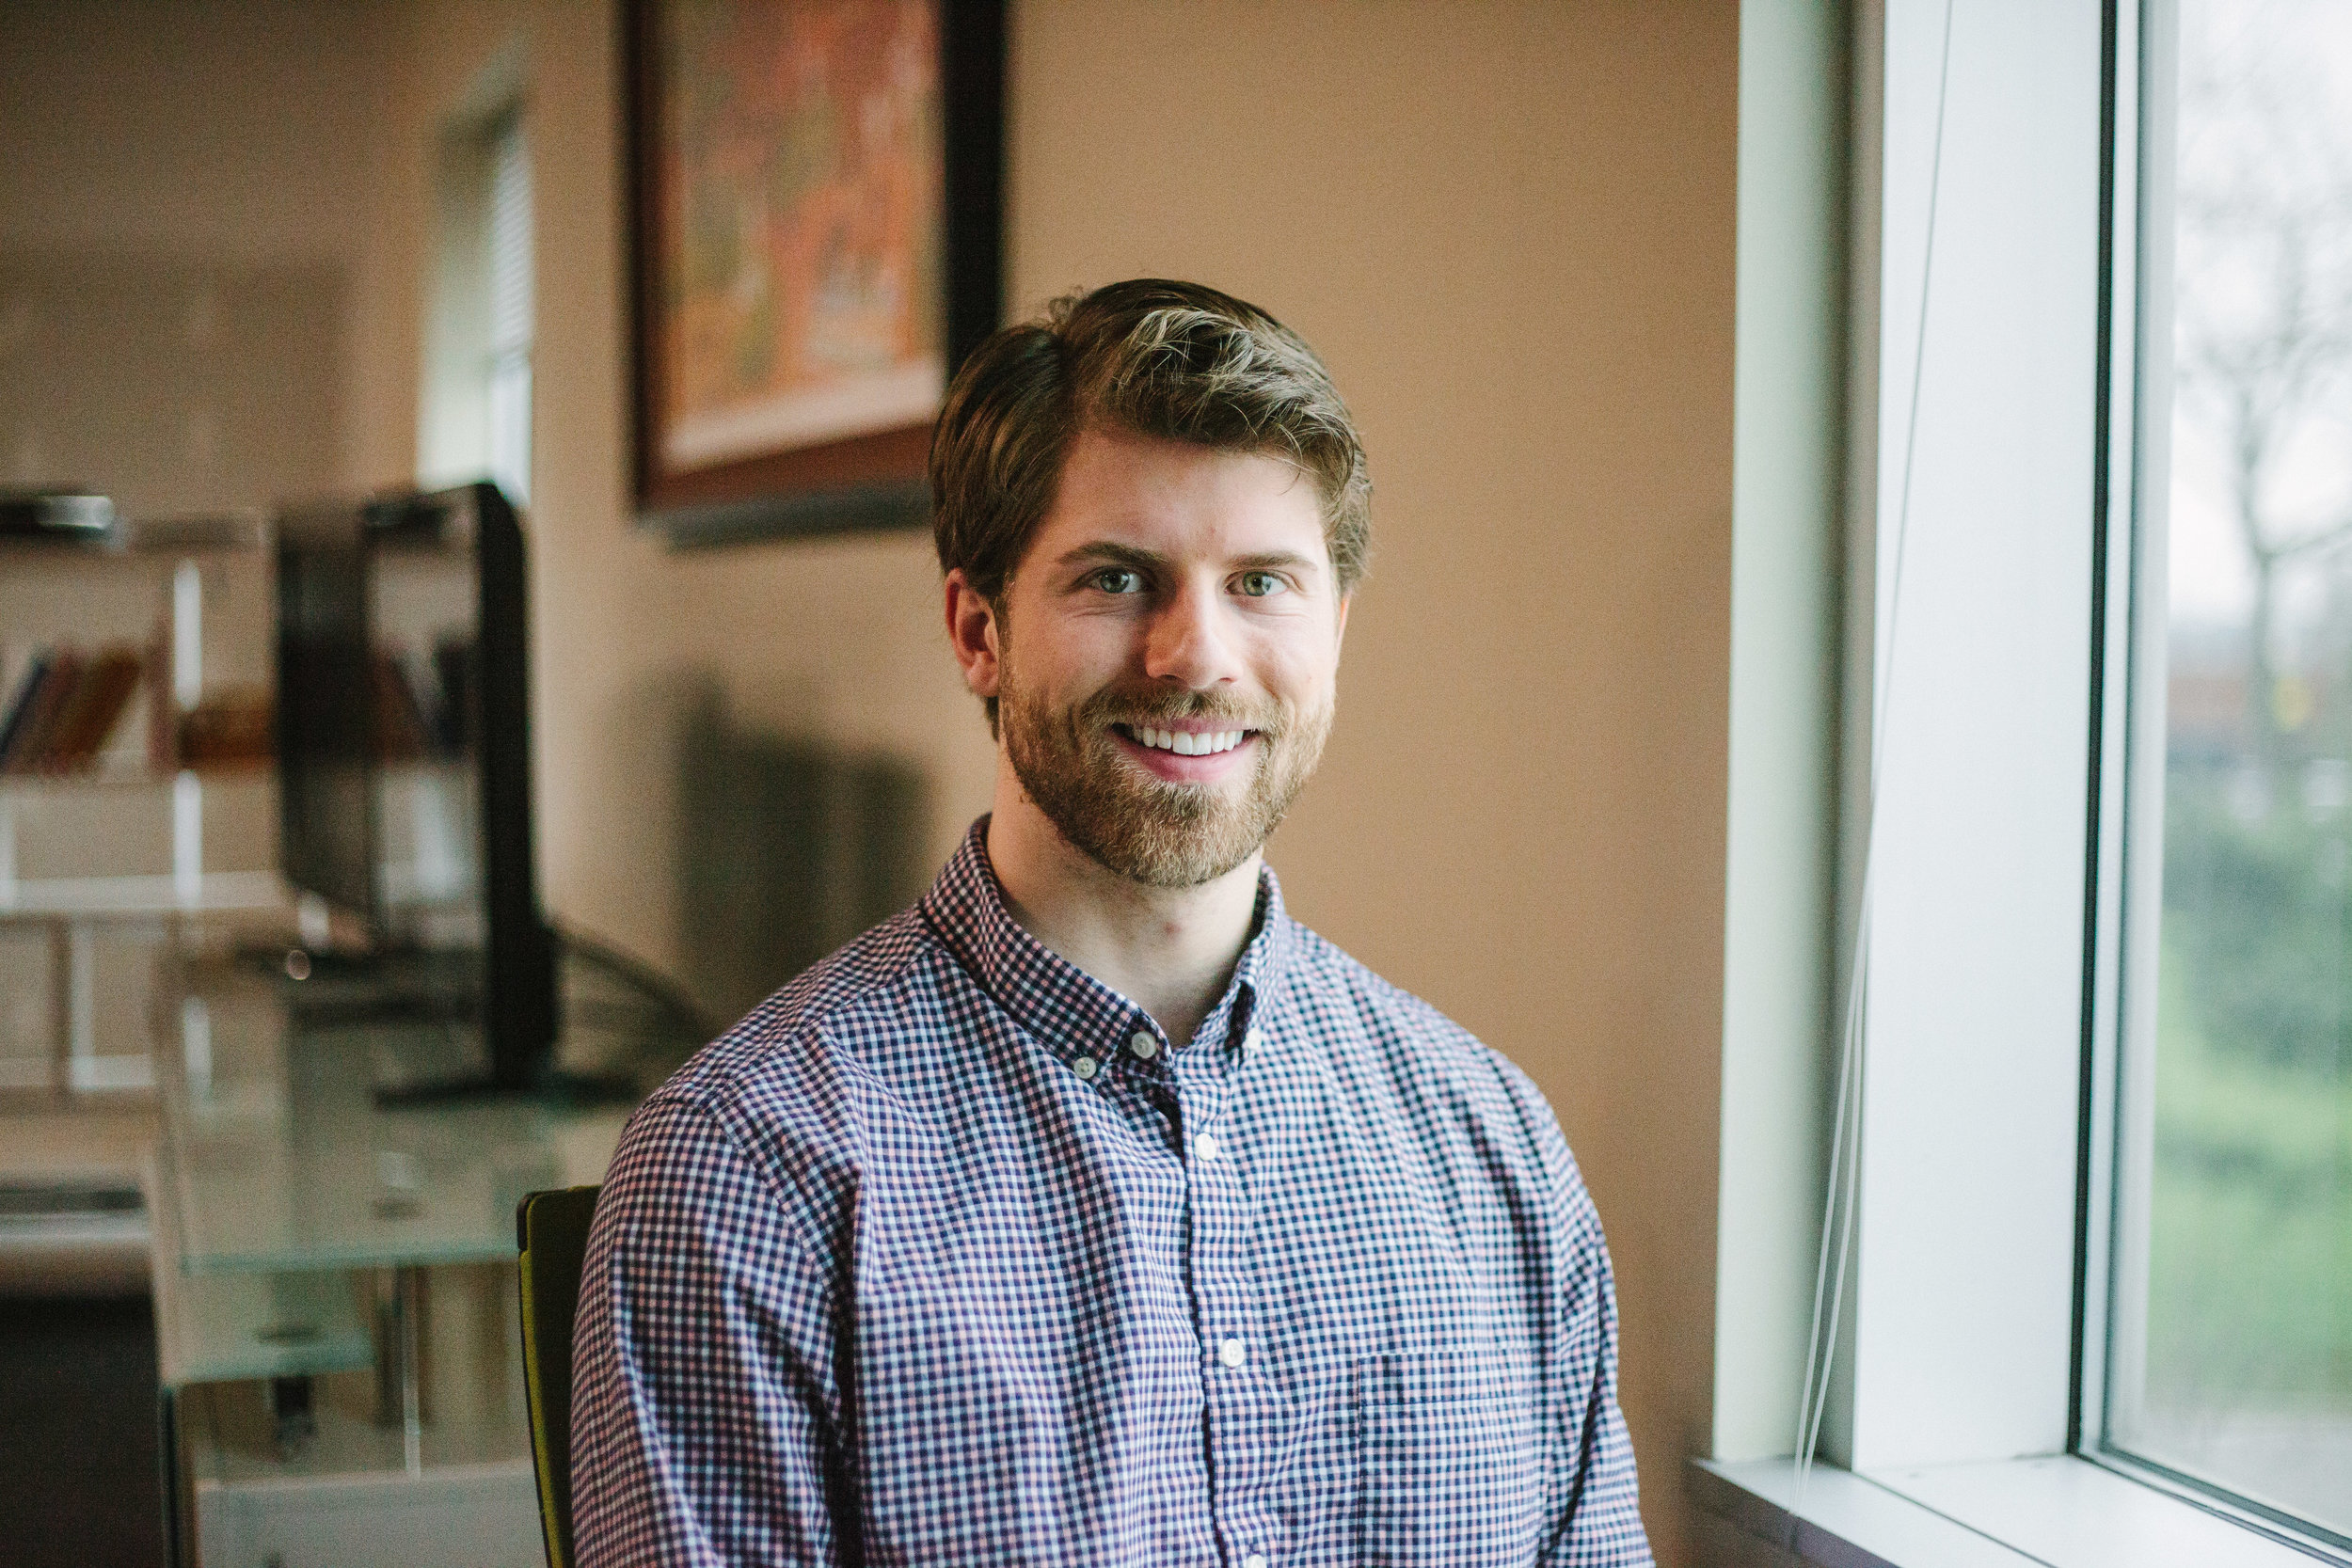 Kal Miller | Client Operations Manager   With an excitement for sport and a past of working sales & support in professional athletics, Kal advances his client campaigns to outperform the competition. Beyond Sapper, Kal deploys his free time sustaining his Spanish linguistic proficiency and perusing trivial baseball statistics.